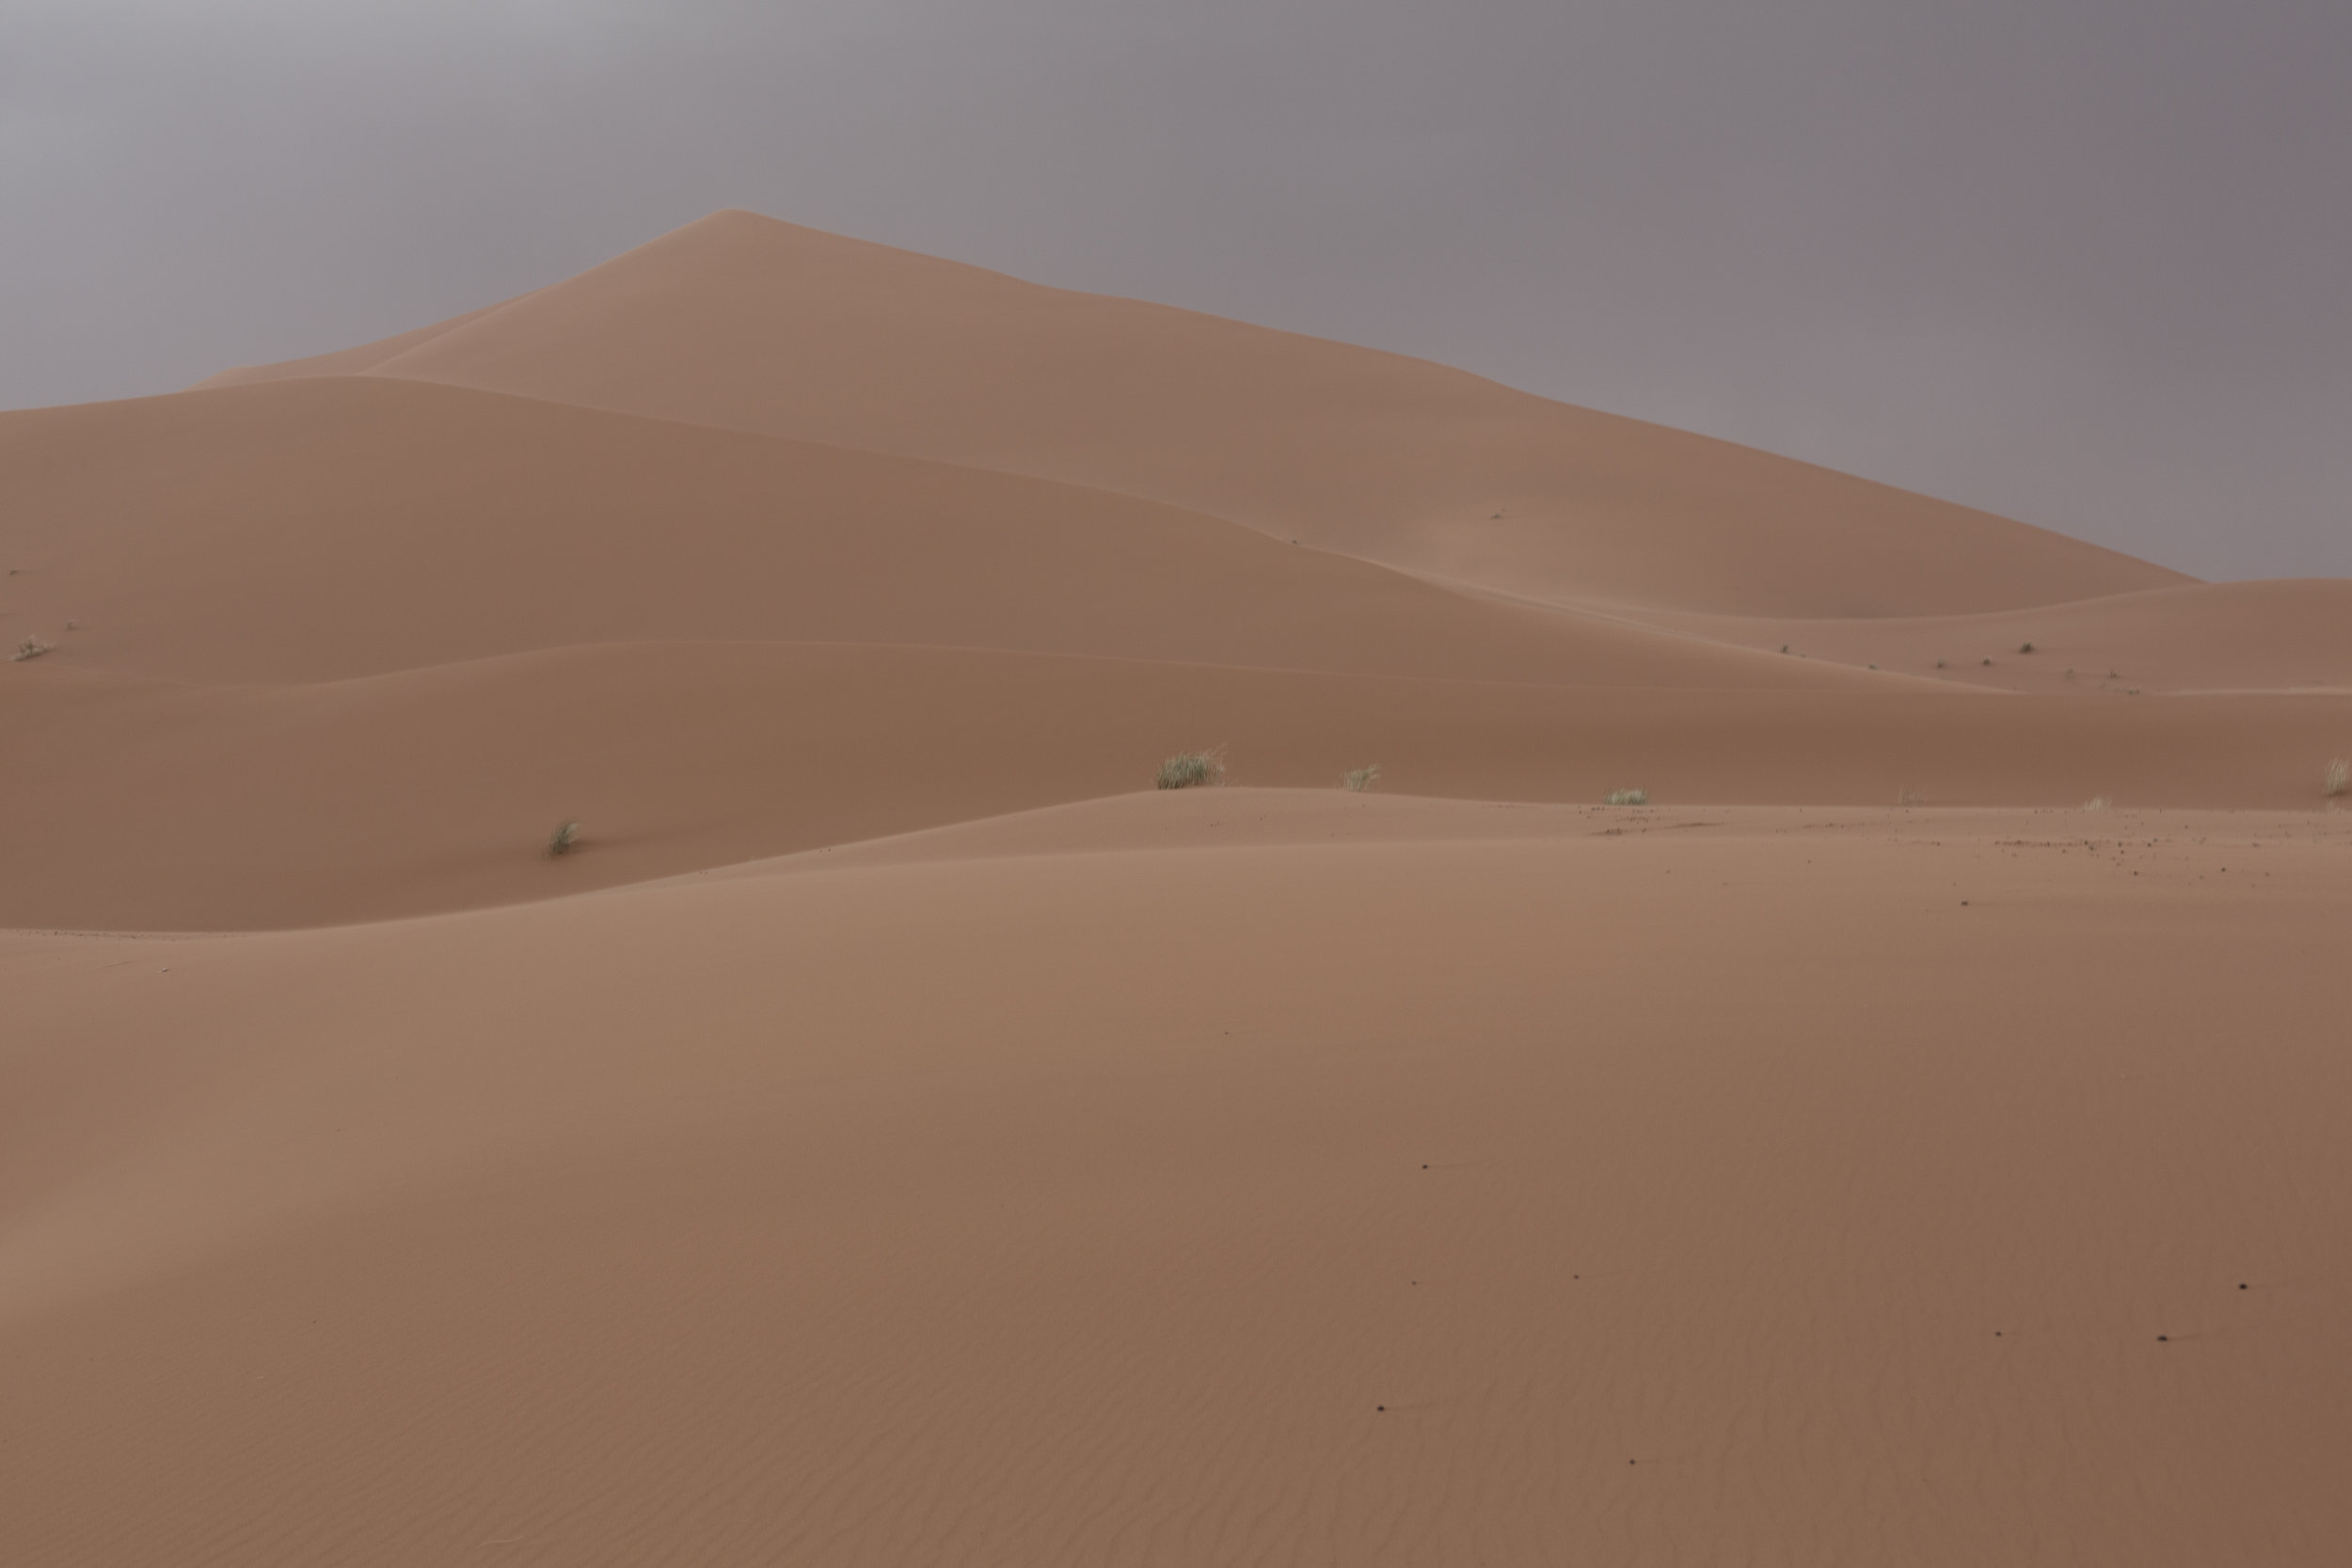 We travelled to our camp in the Sahara on camels, amidst a sandstorm and occasional splashes of rain!